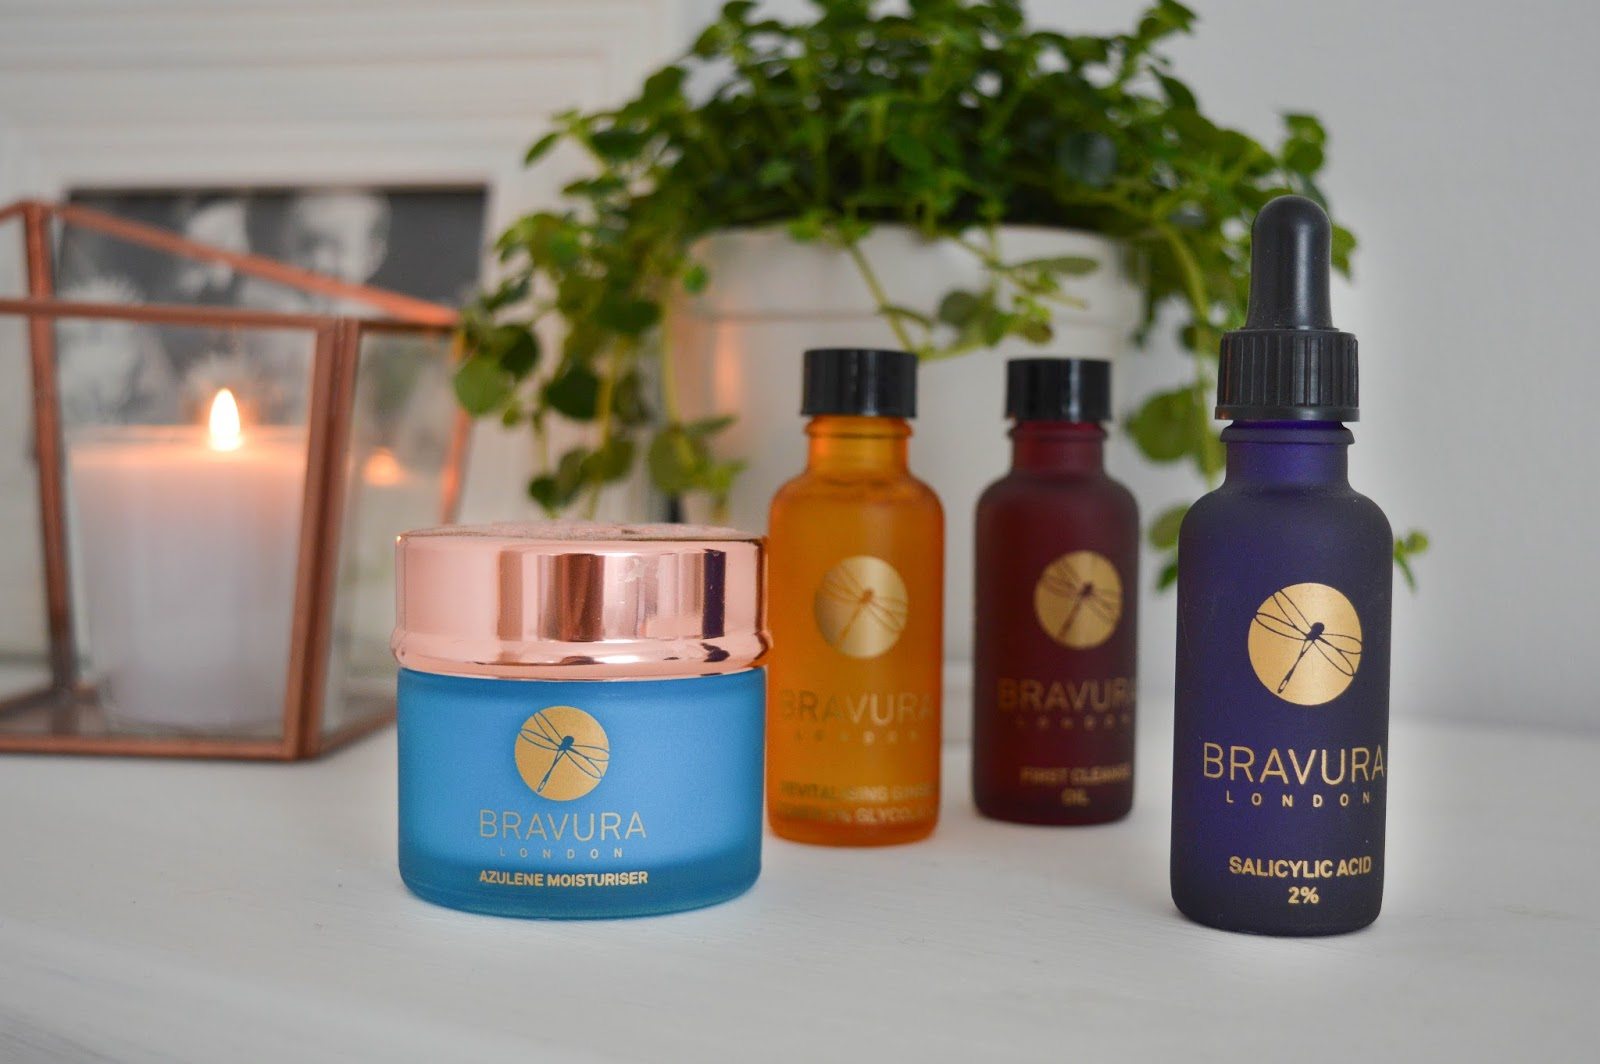 Review of Bravura London Skincare, UK beauty blog, Bravura London, Dalry Rose